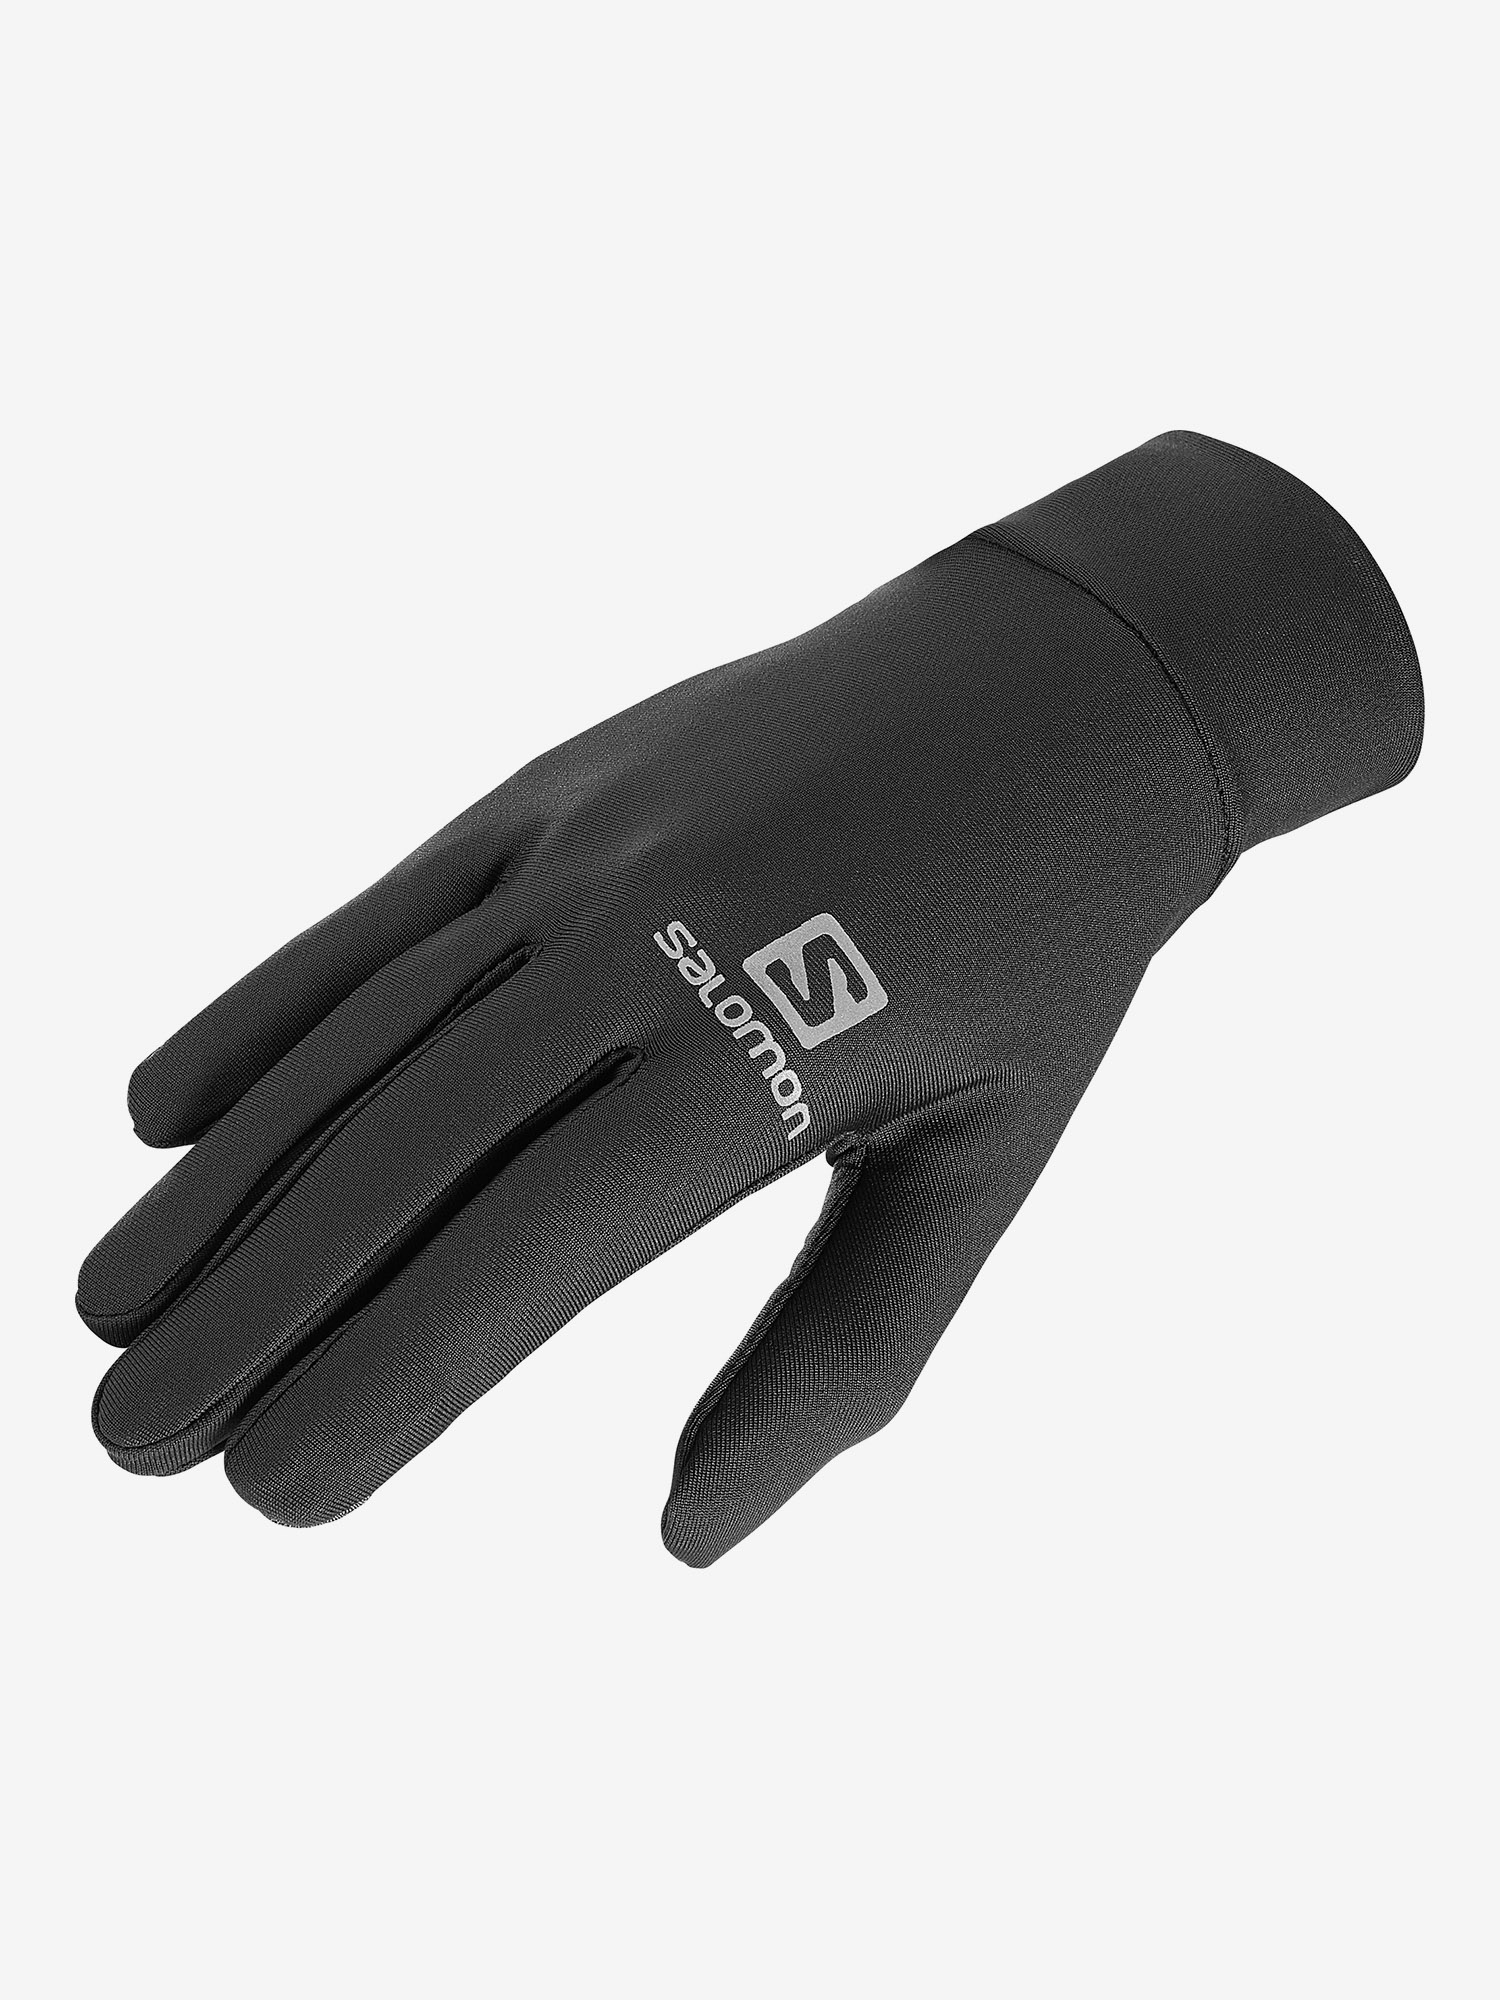 Rukavice Salomon Agile Warm Glove U (1)